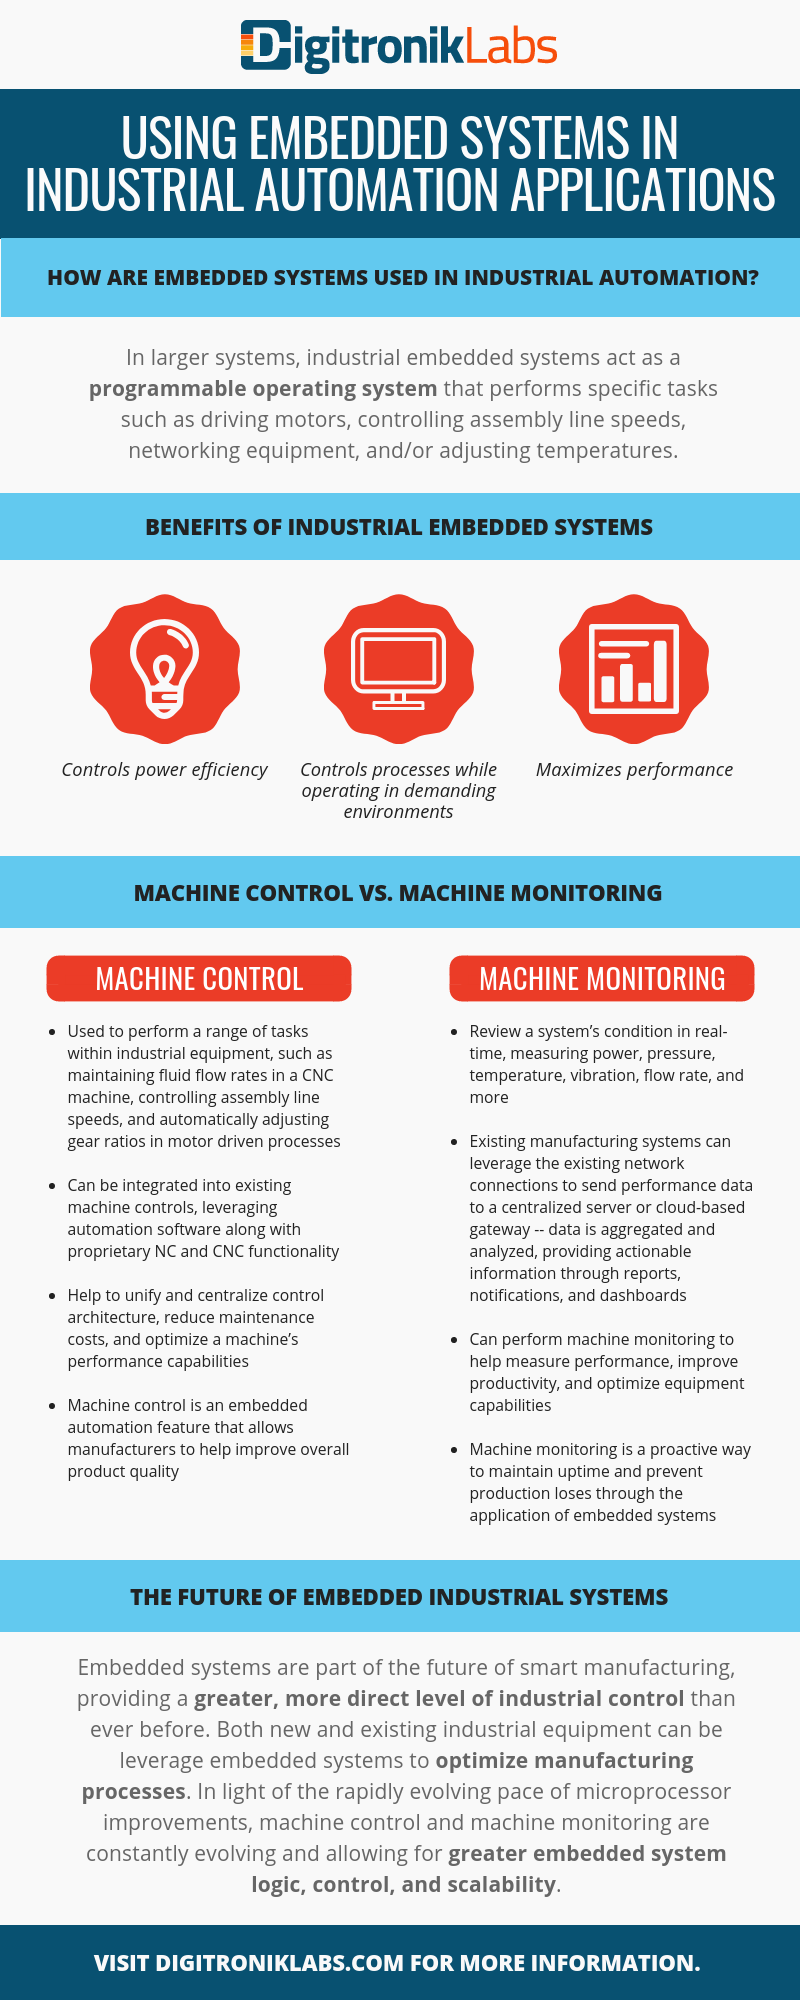 Using Embedded Systems in Industrial Automation Applications